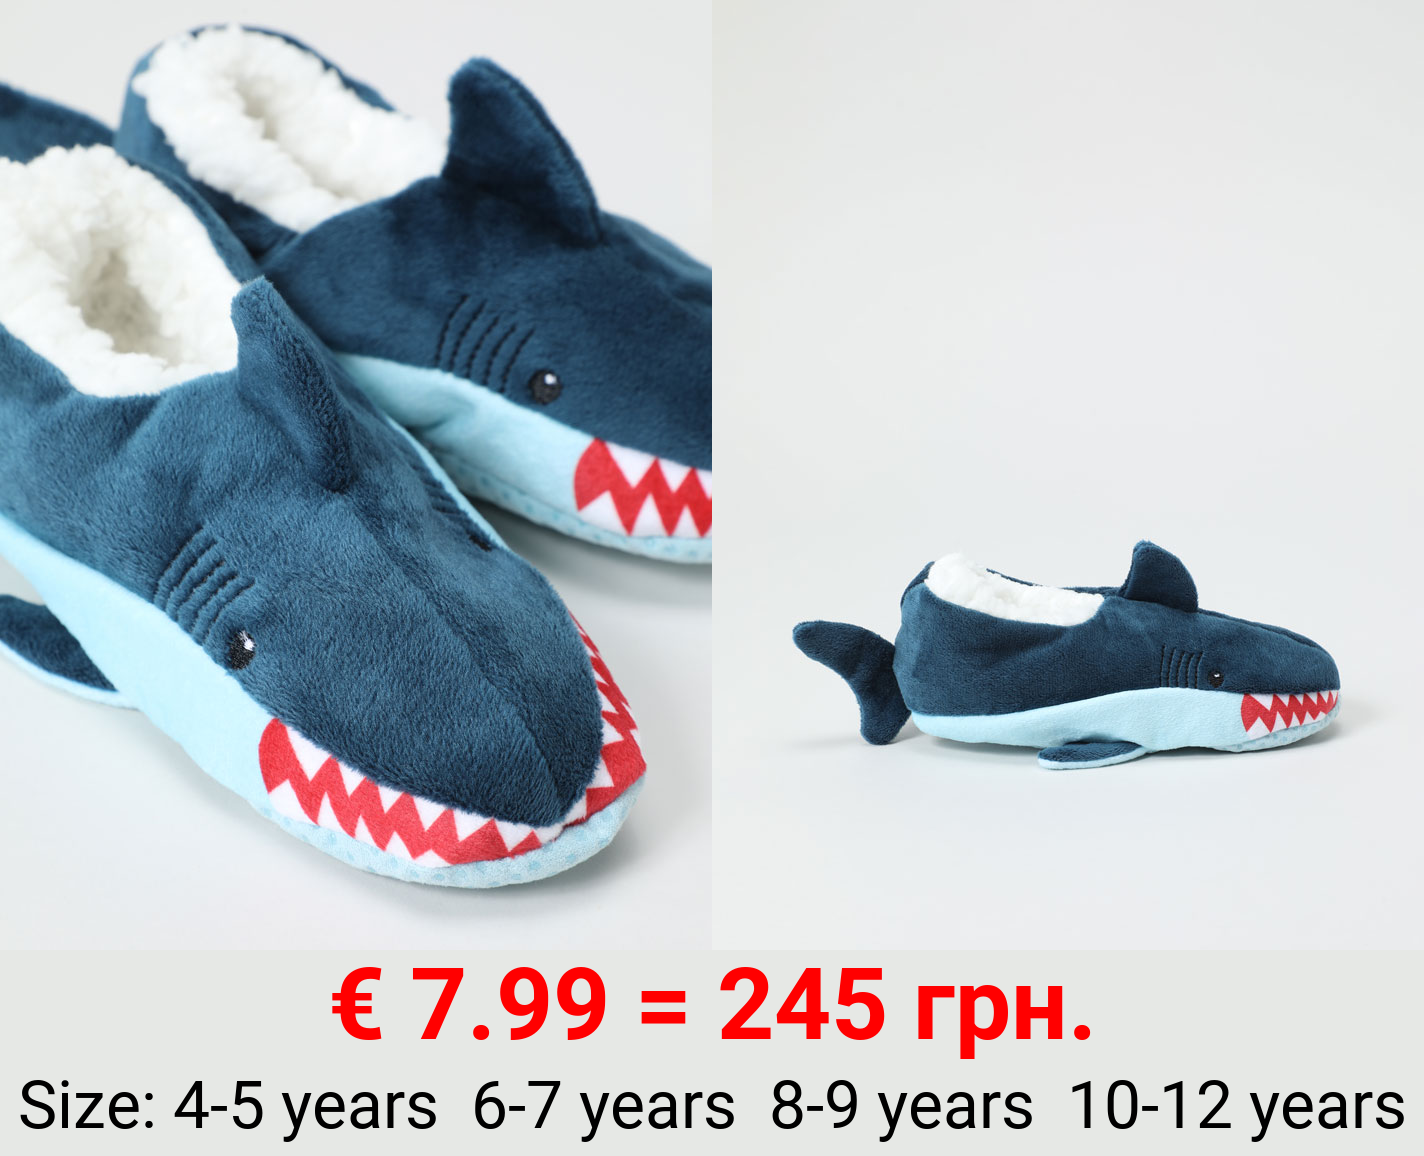 Sock-style shark slippers with extra warm interior